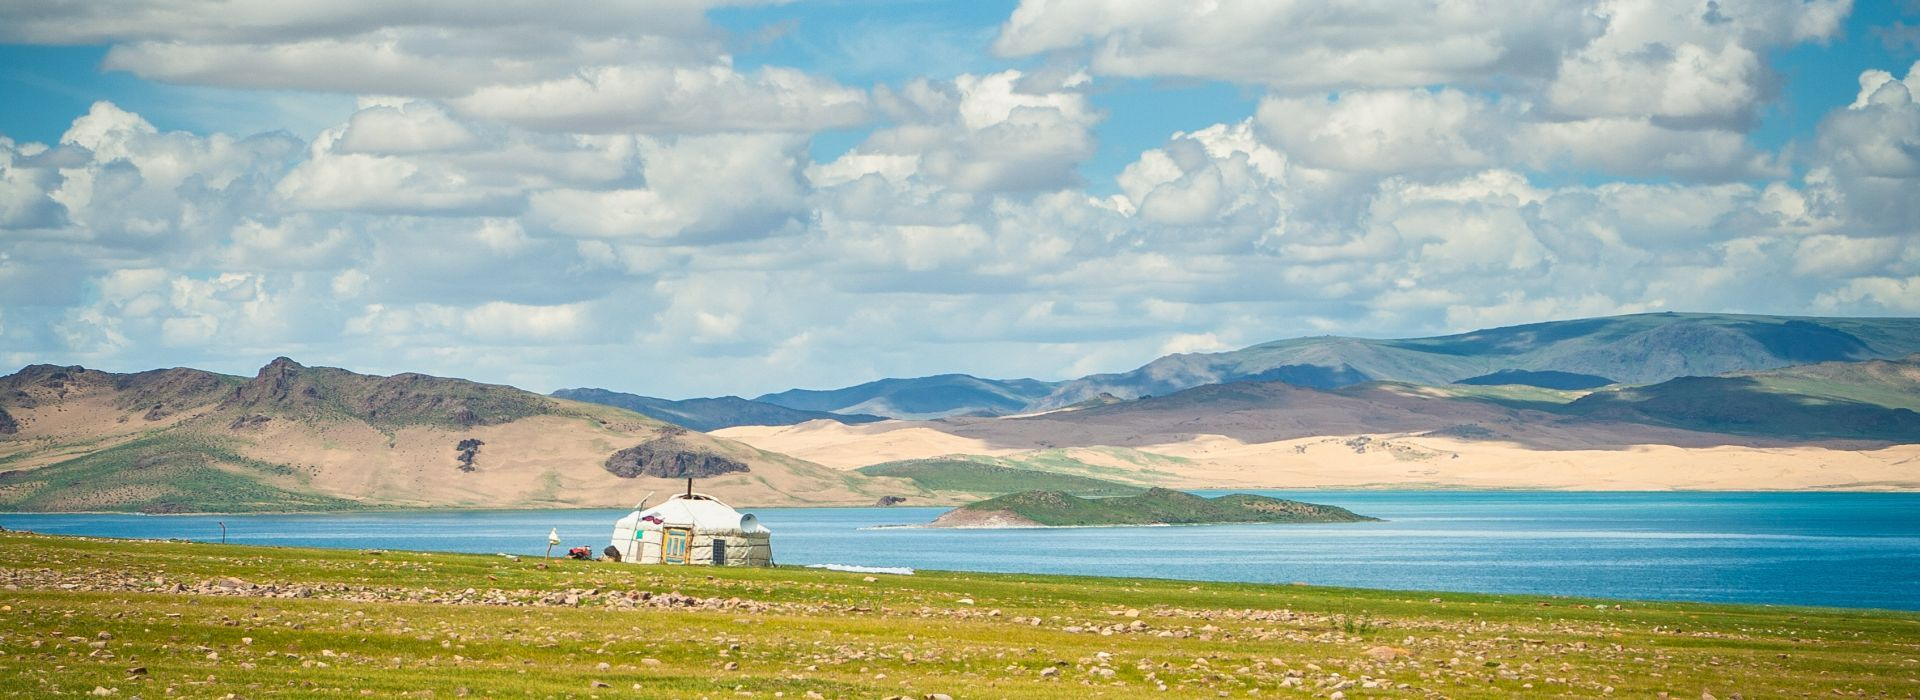 Wildlife, landscapes and nature Tours in Mongolia